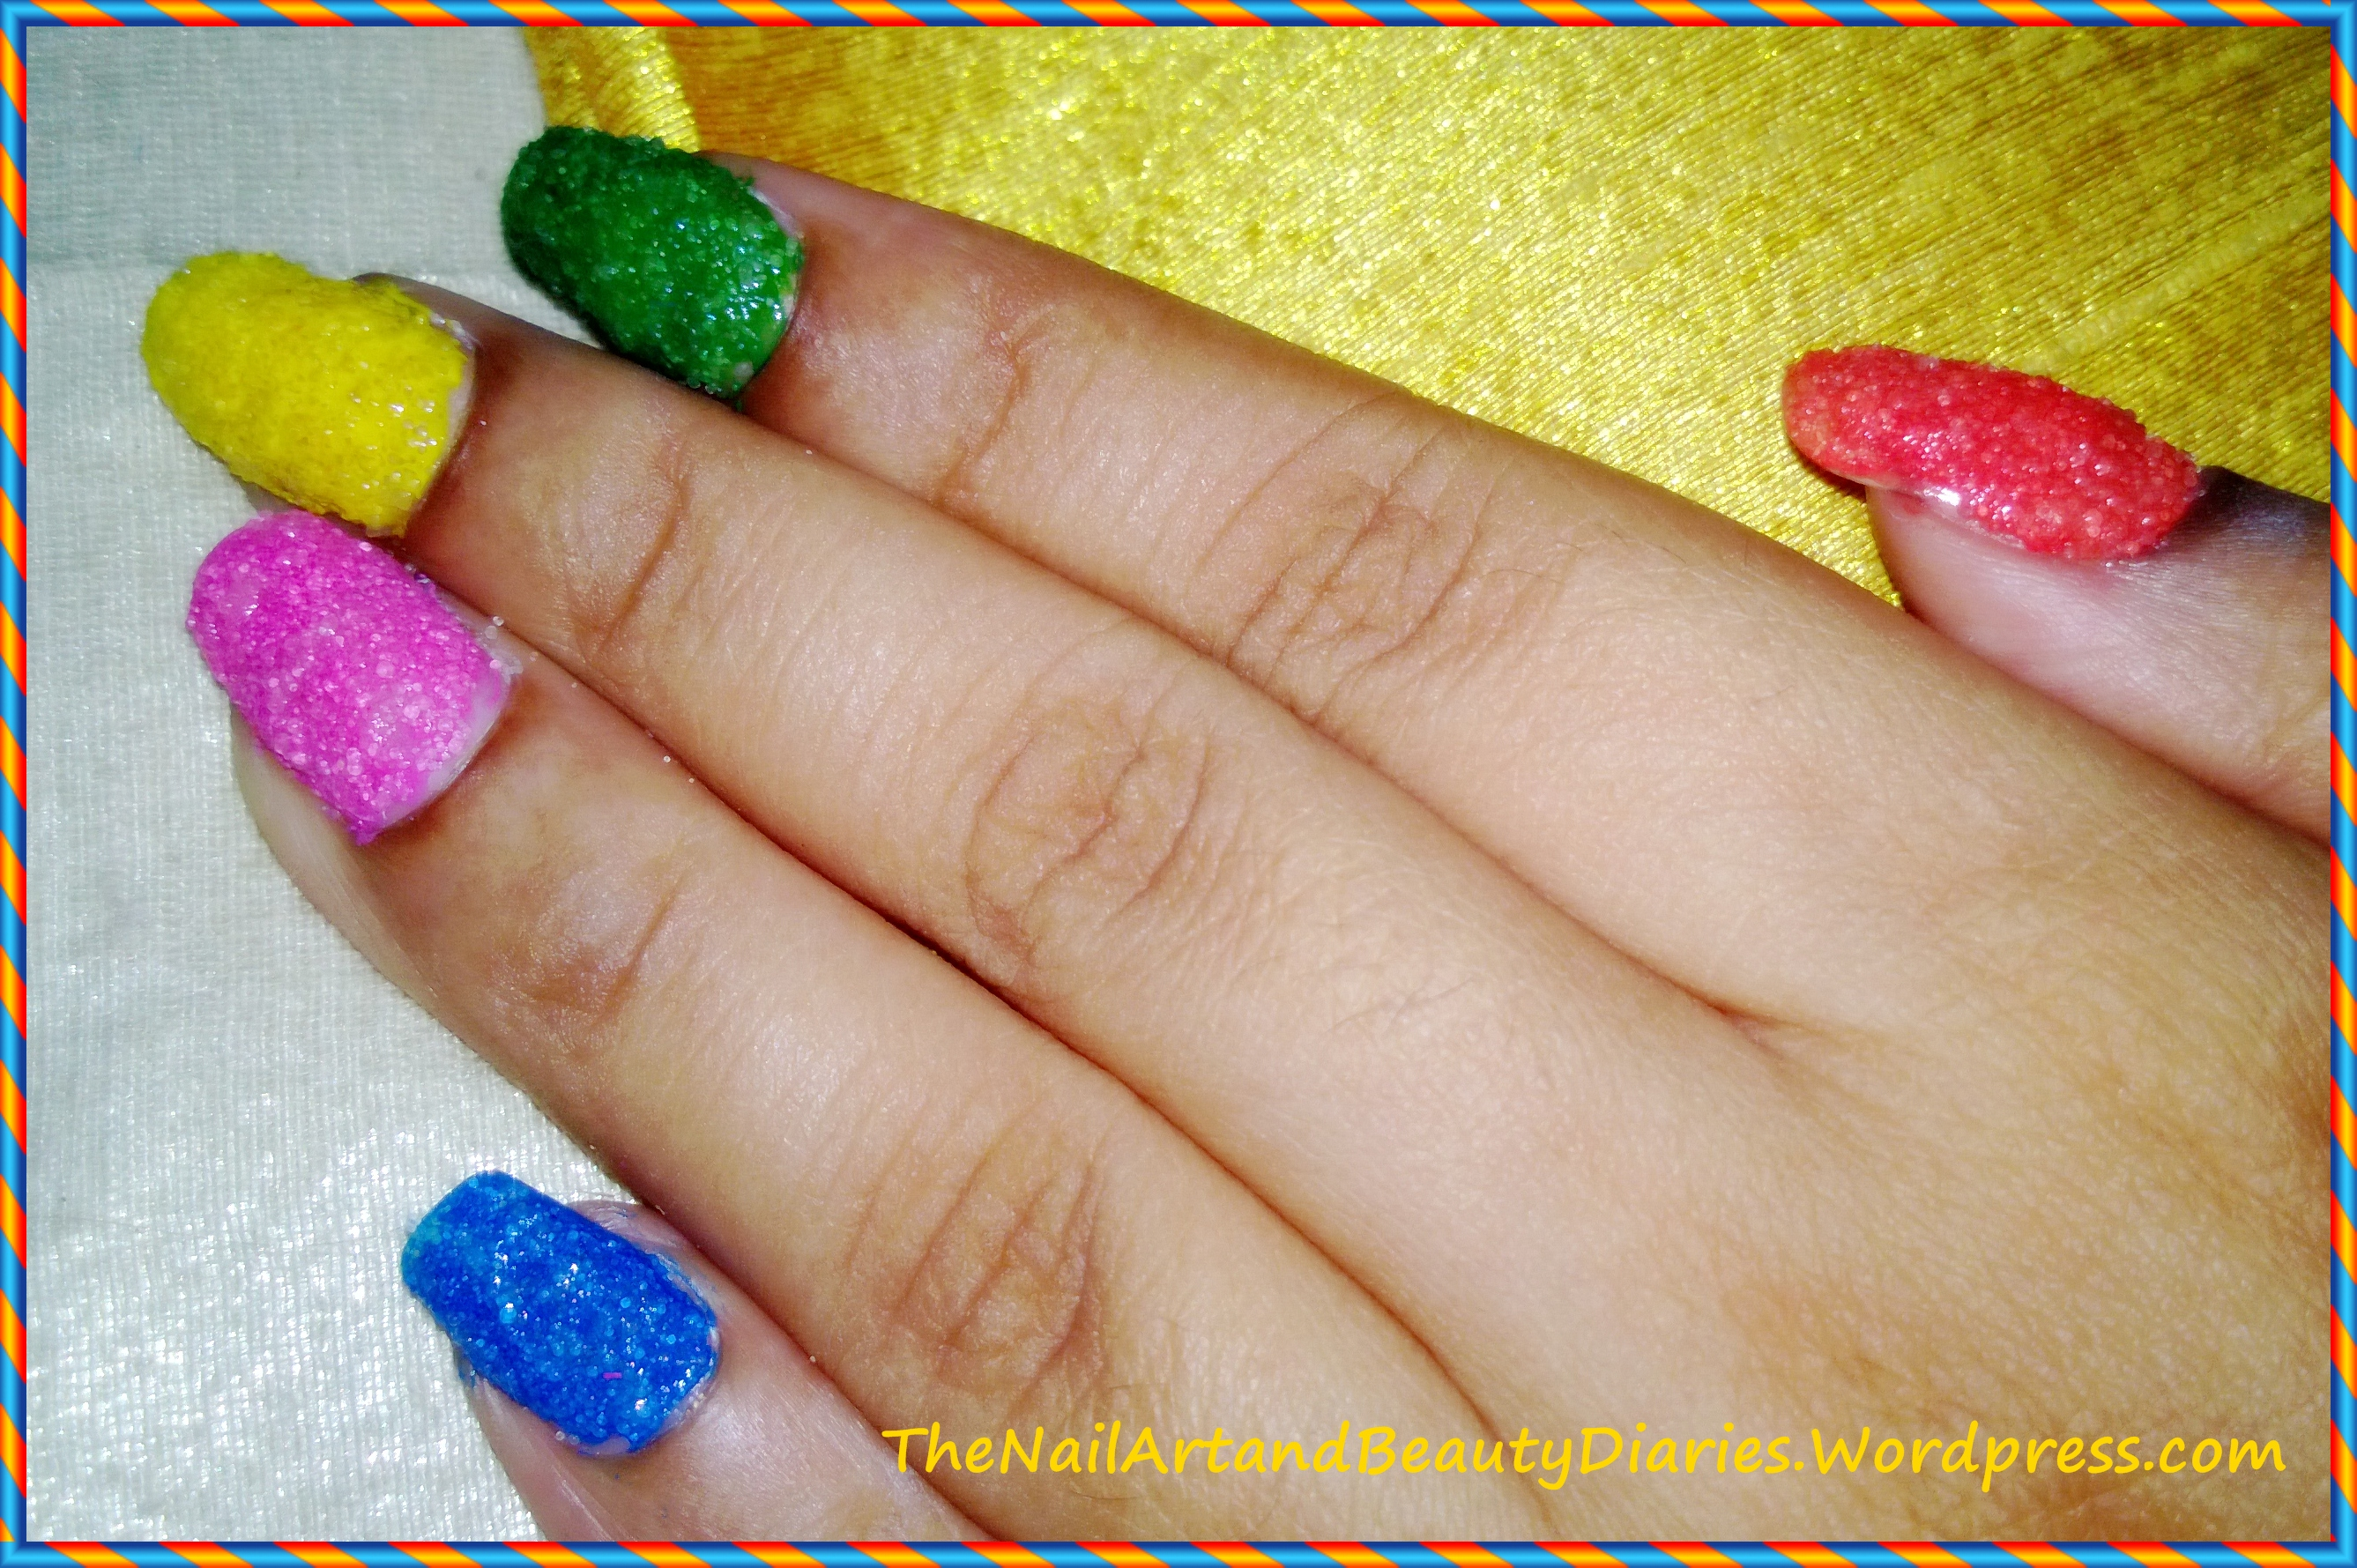 Easy at home nail art 27 diy summer textured nails with salt diy texured summer nails prinsesfo Image collections